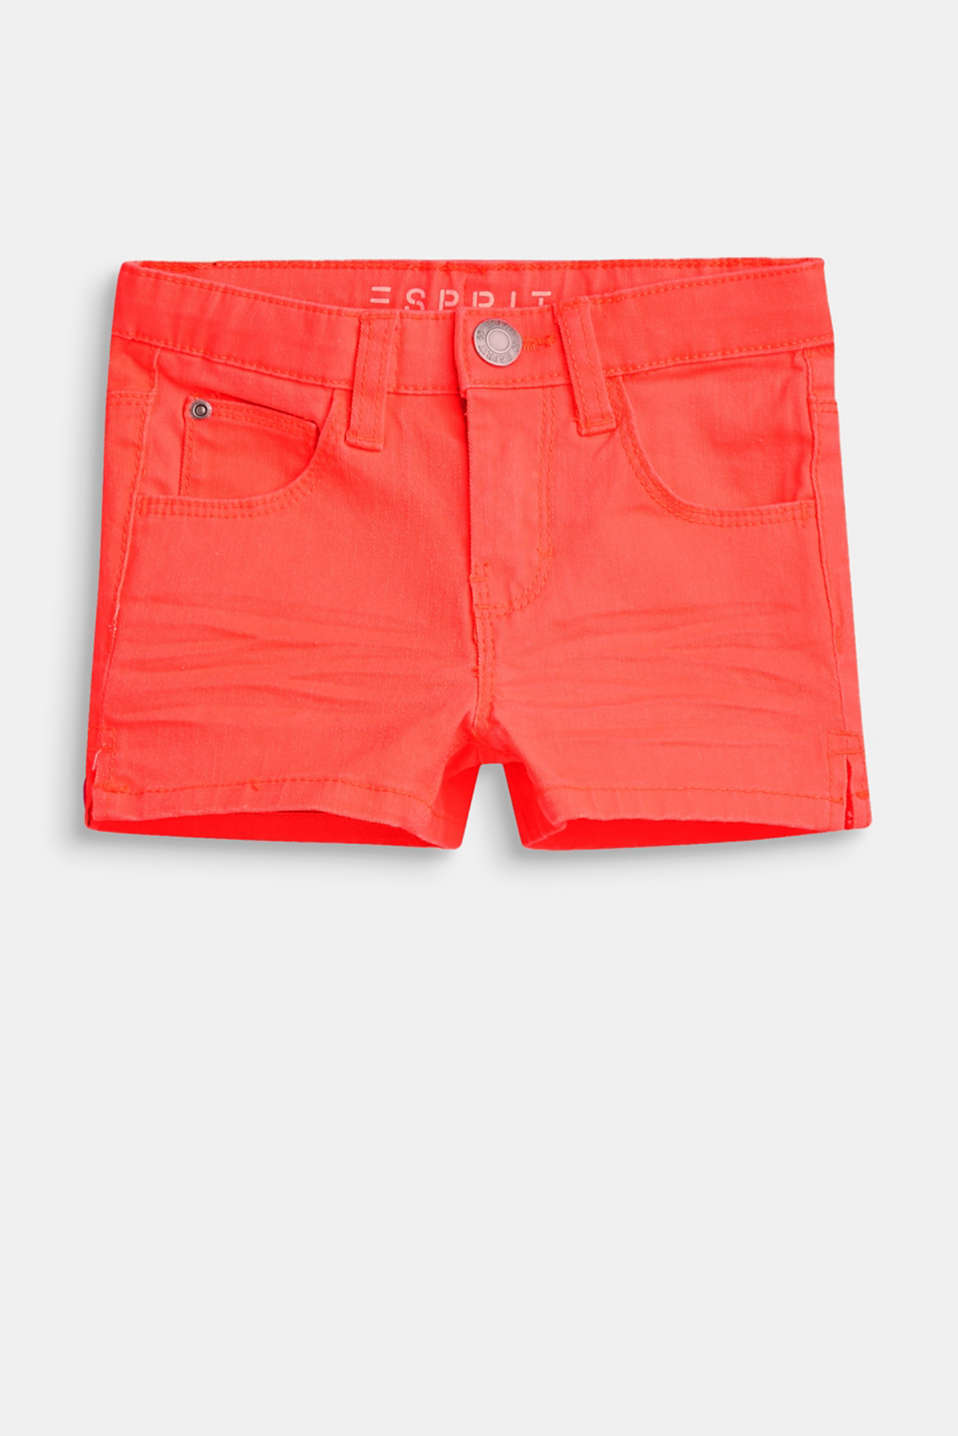 Esprit - Coloured stretch denim shorts with an adjustable waistband